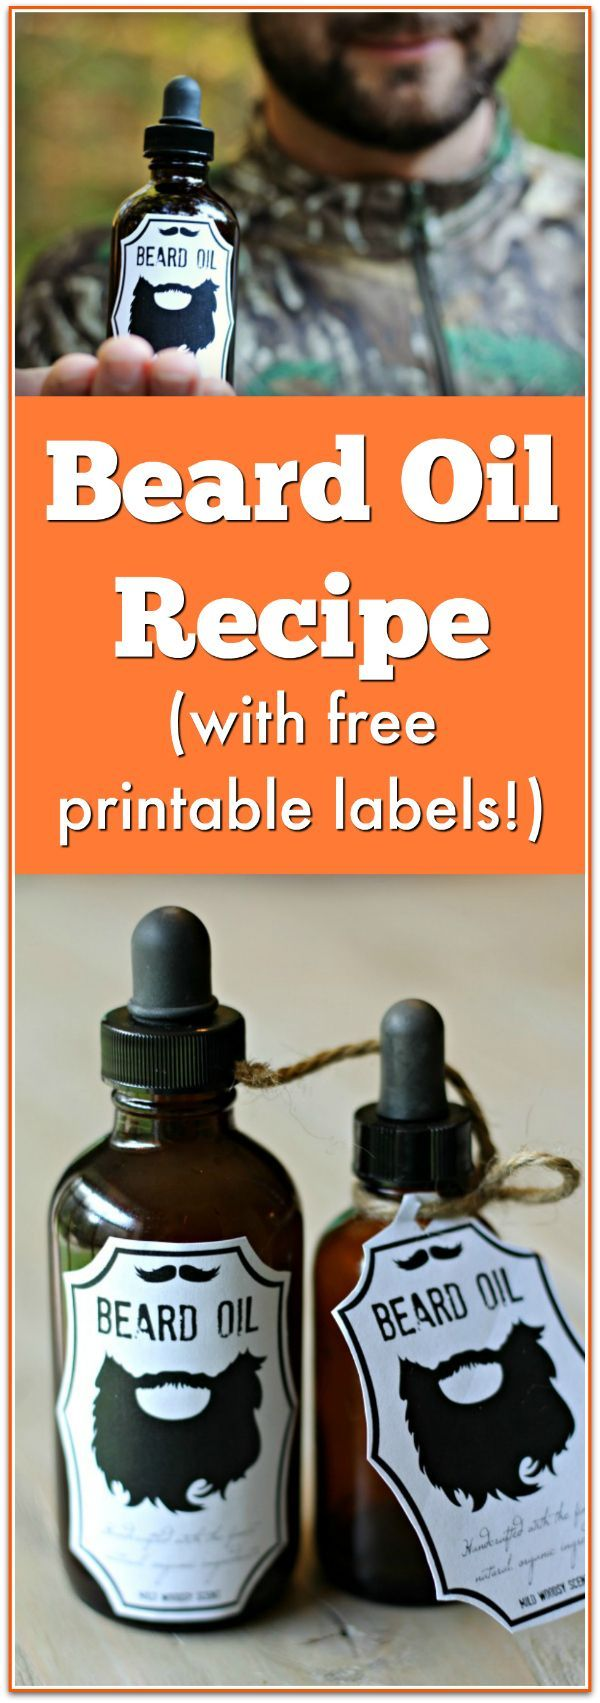 The 25+ best Free printable labels ideas on Pinterest ...